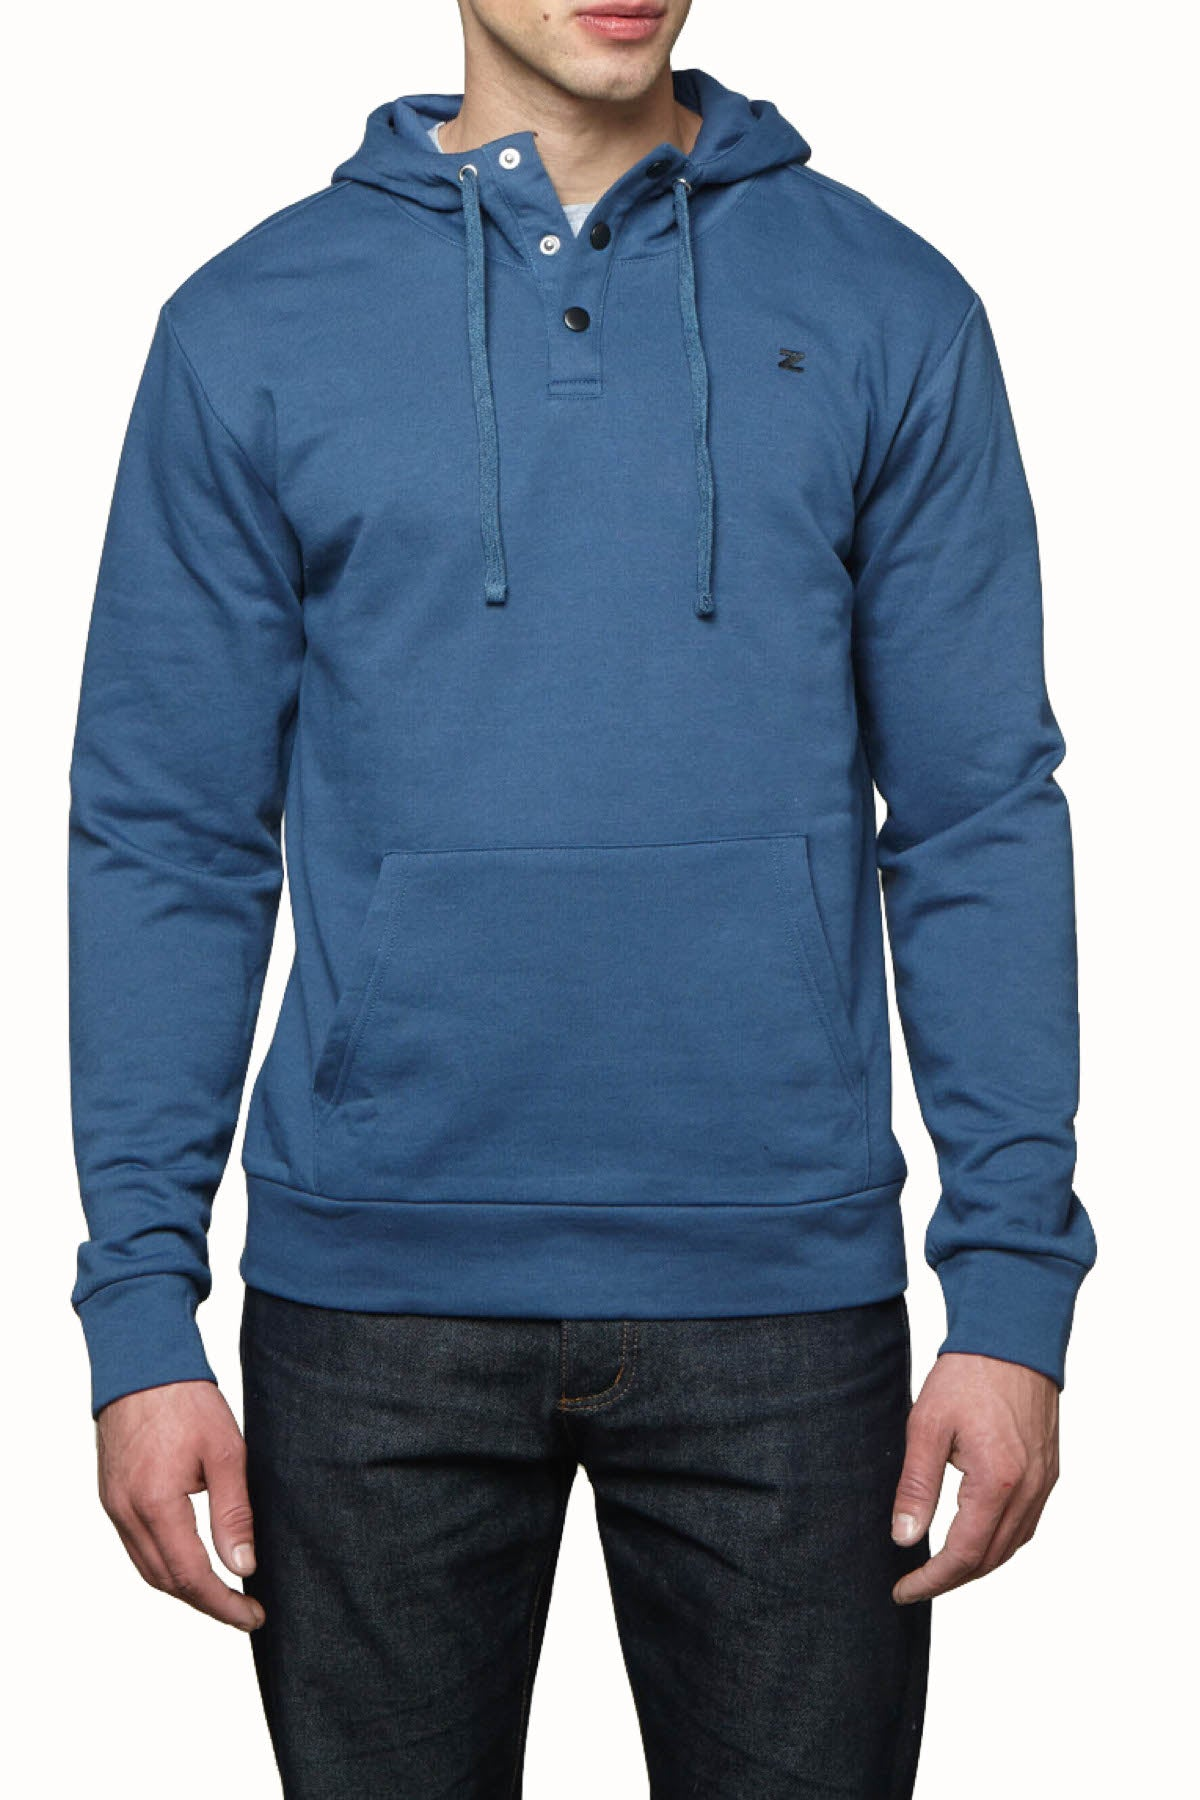 Zutoq Blue Zunked Hooded Sweatshirt